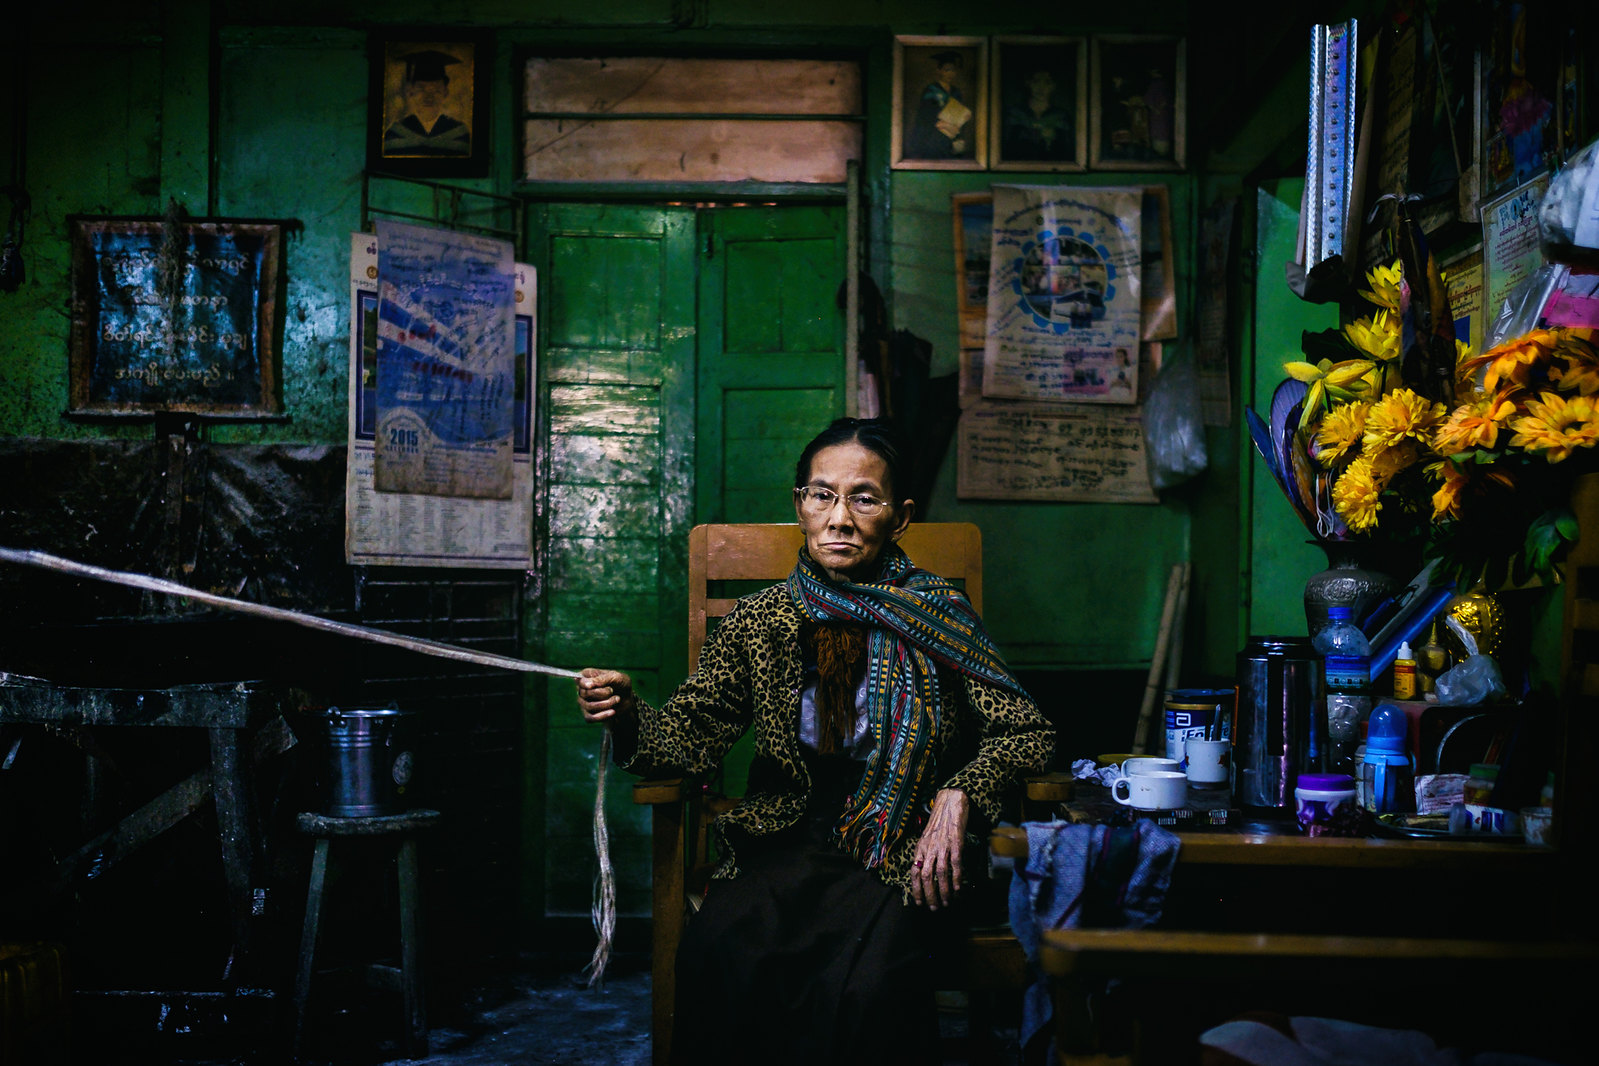 Sagaing bar owner, Myanmar | by Guille Ibanez